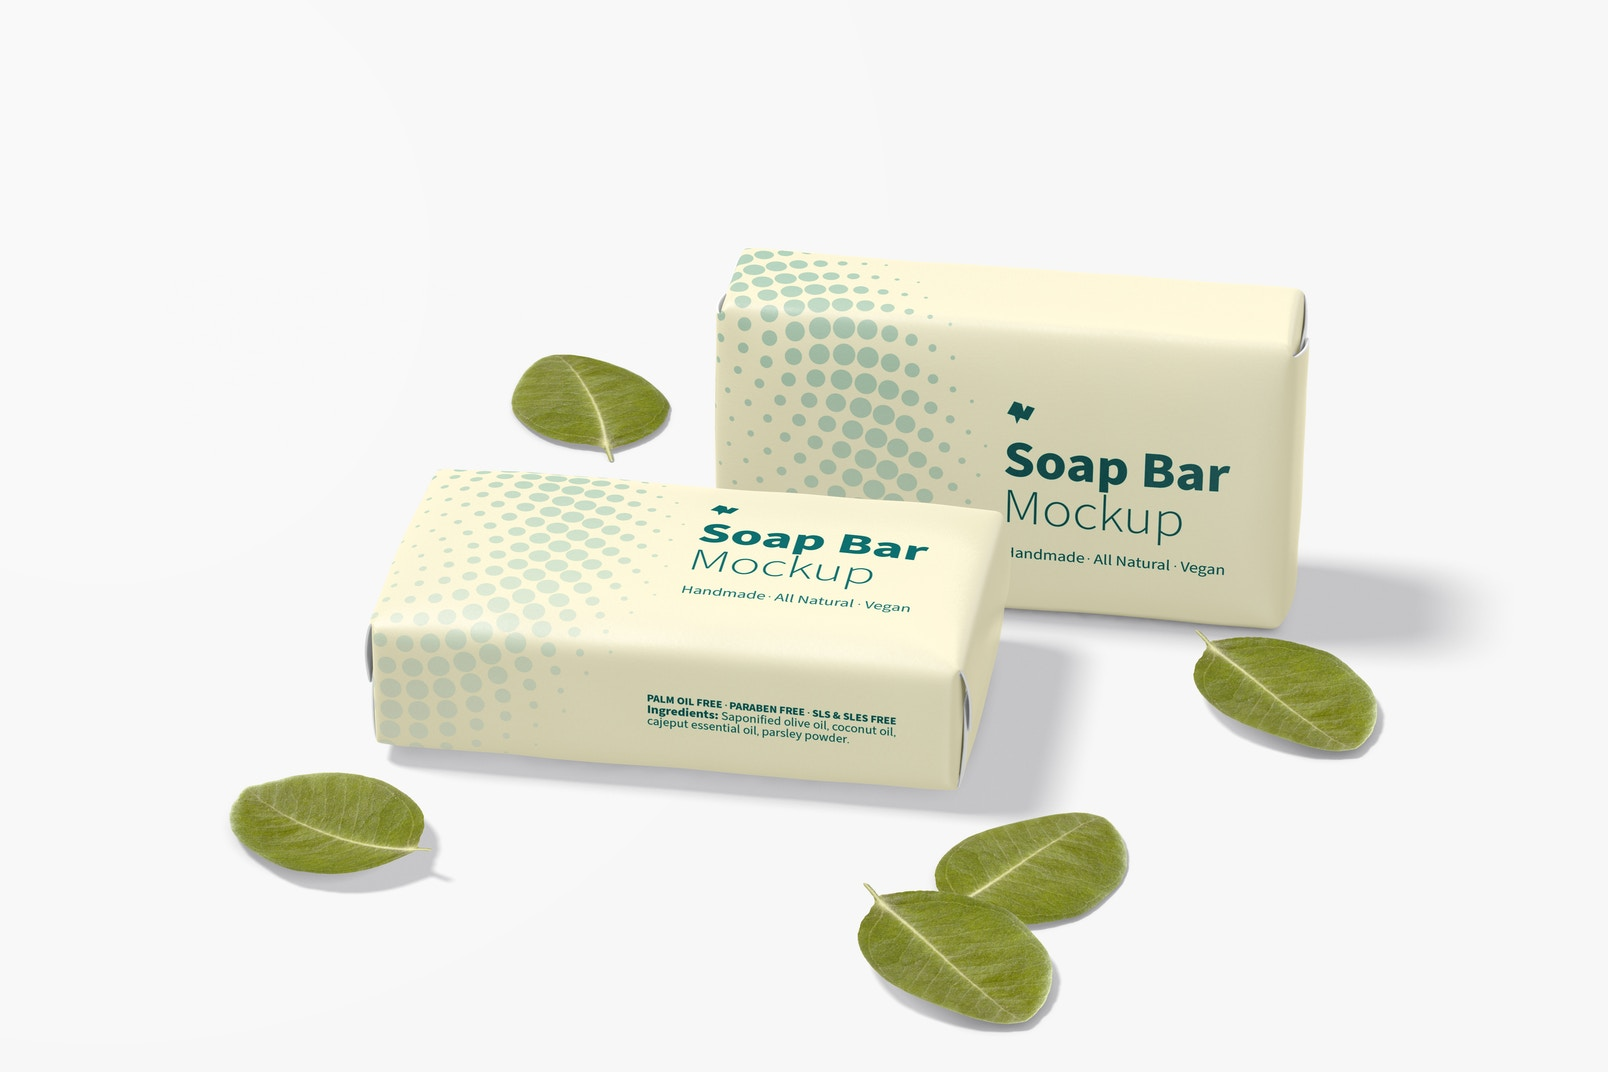 Soap Bars with Paper Package Mockup, Dropped